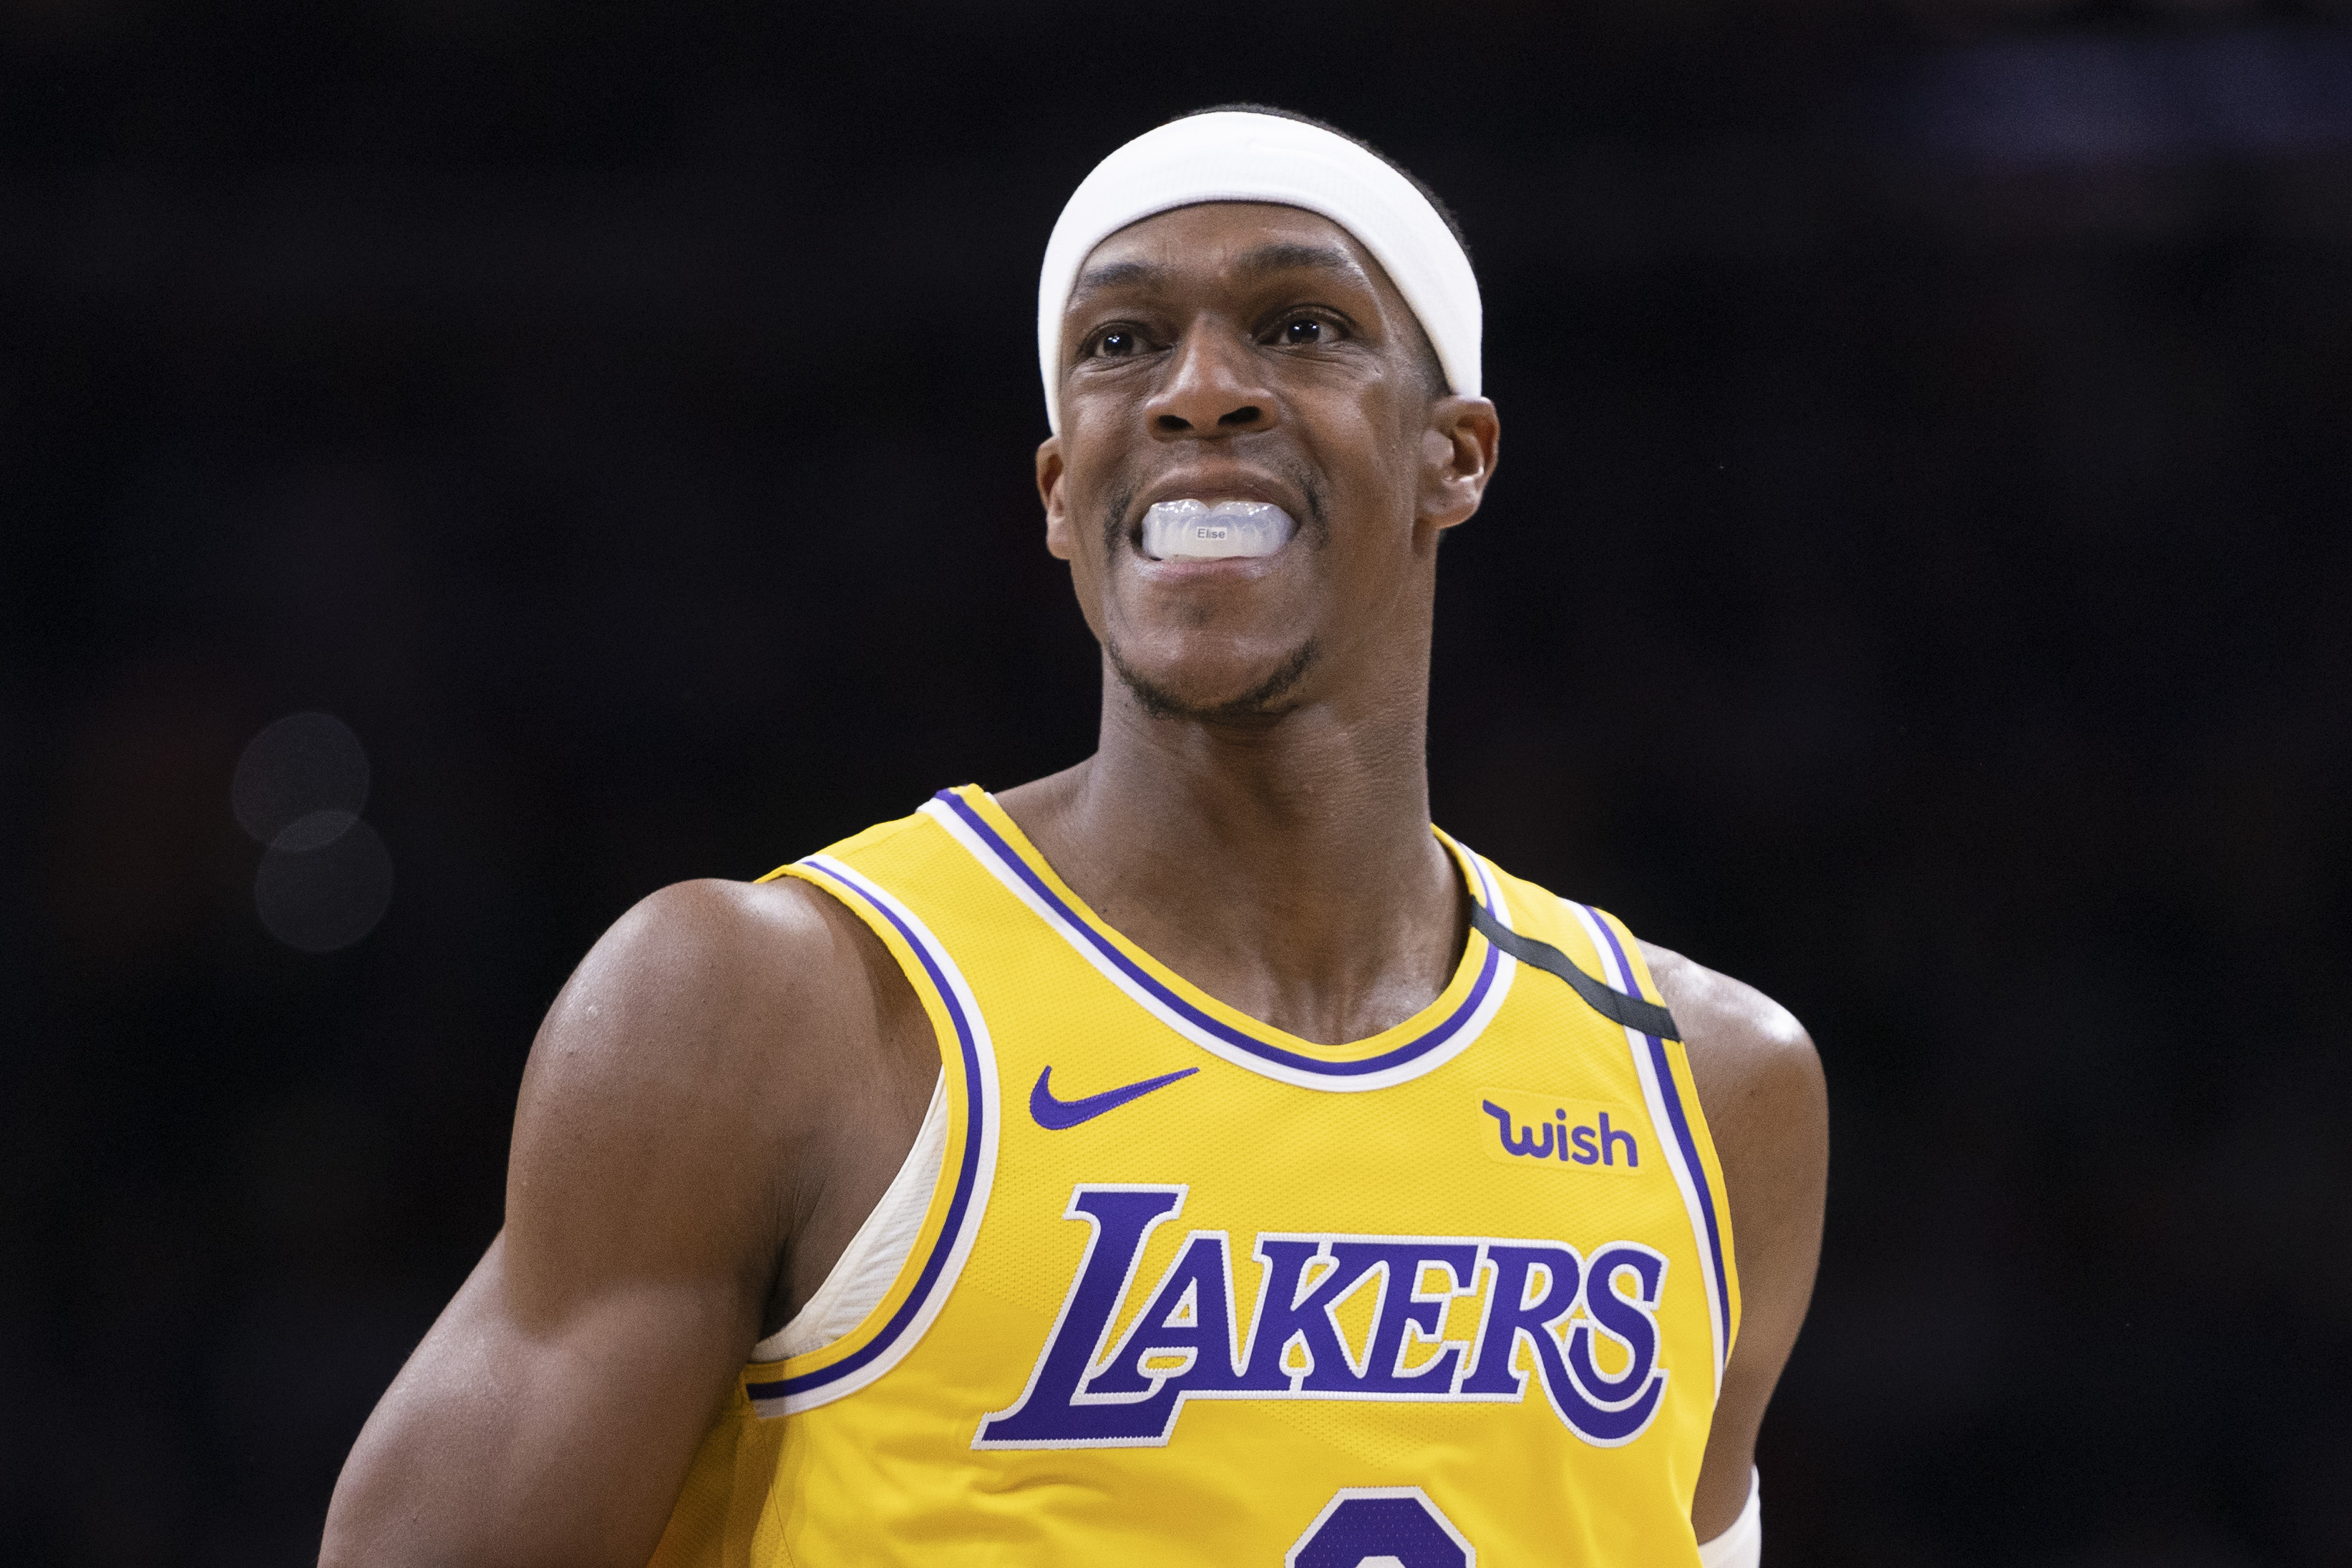 Rajon Rondo looks on during a Lakers game